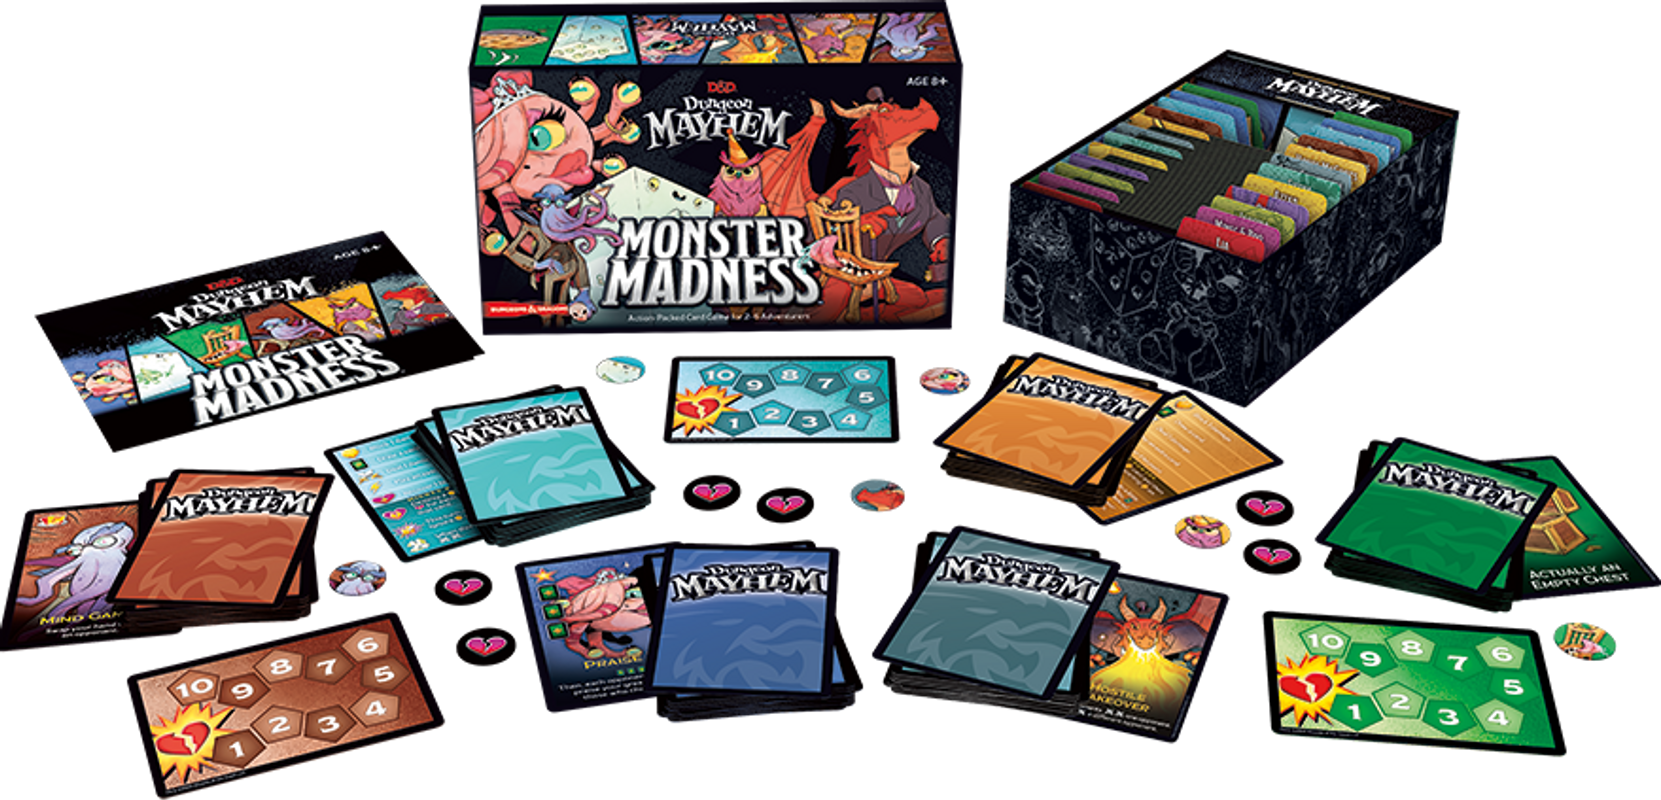 Dungeon Mayhem: Monster Madness components